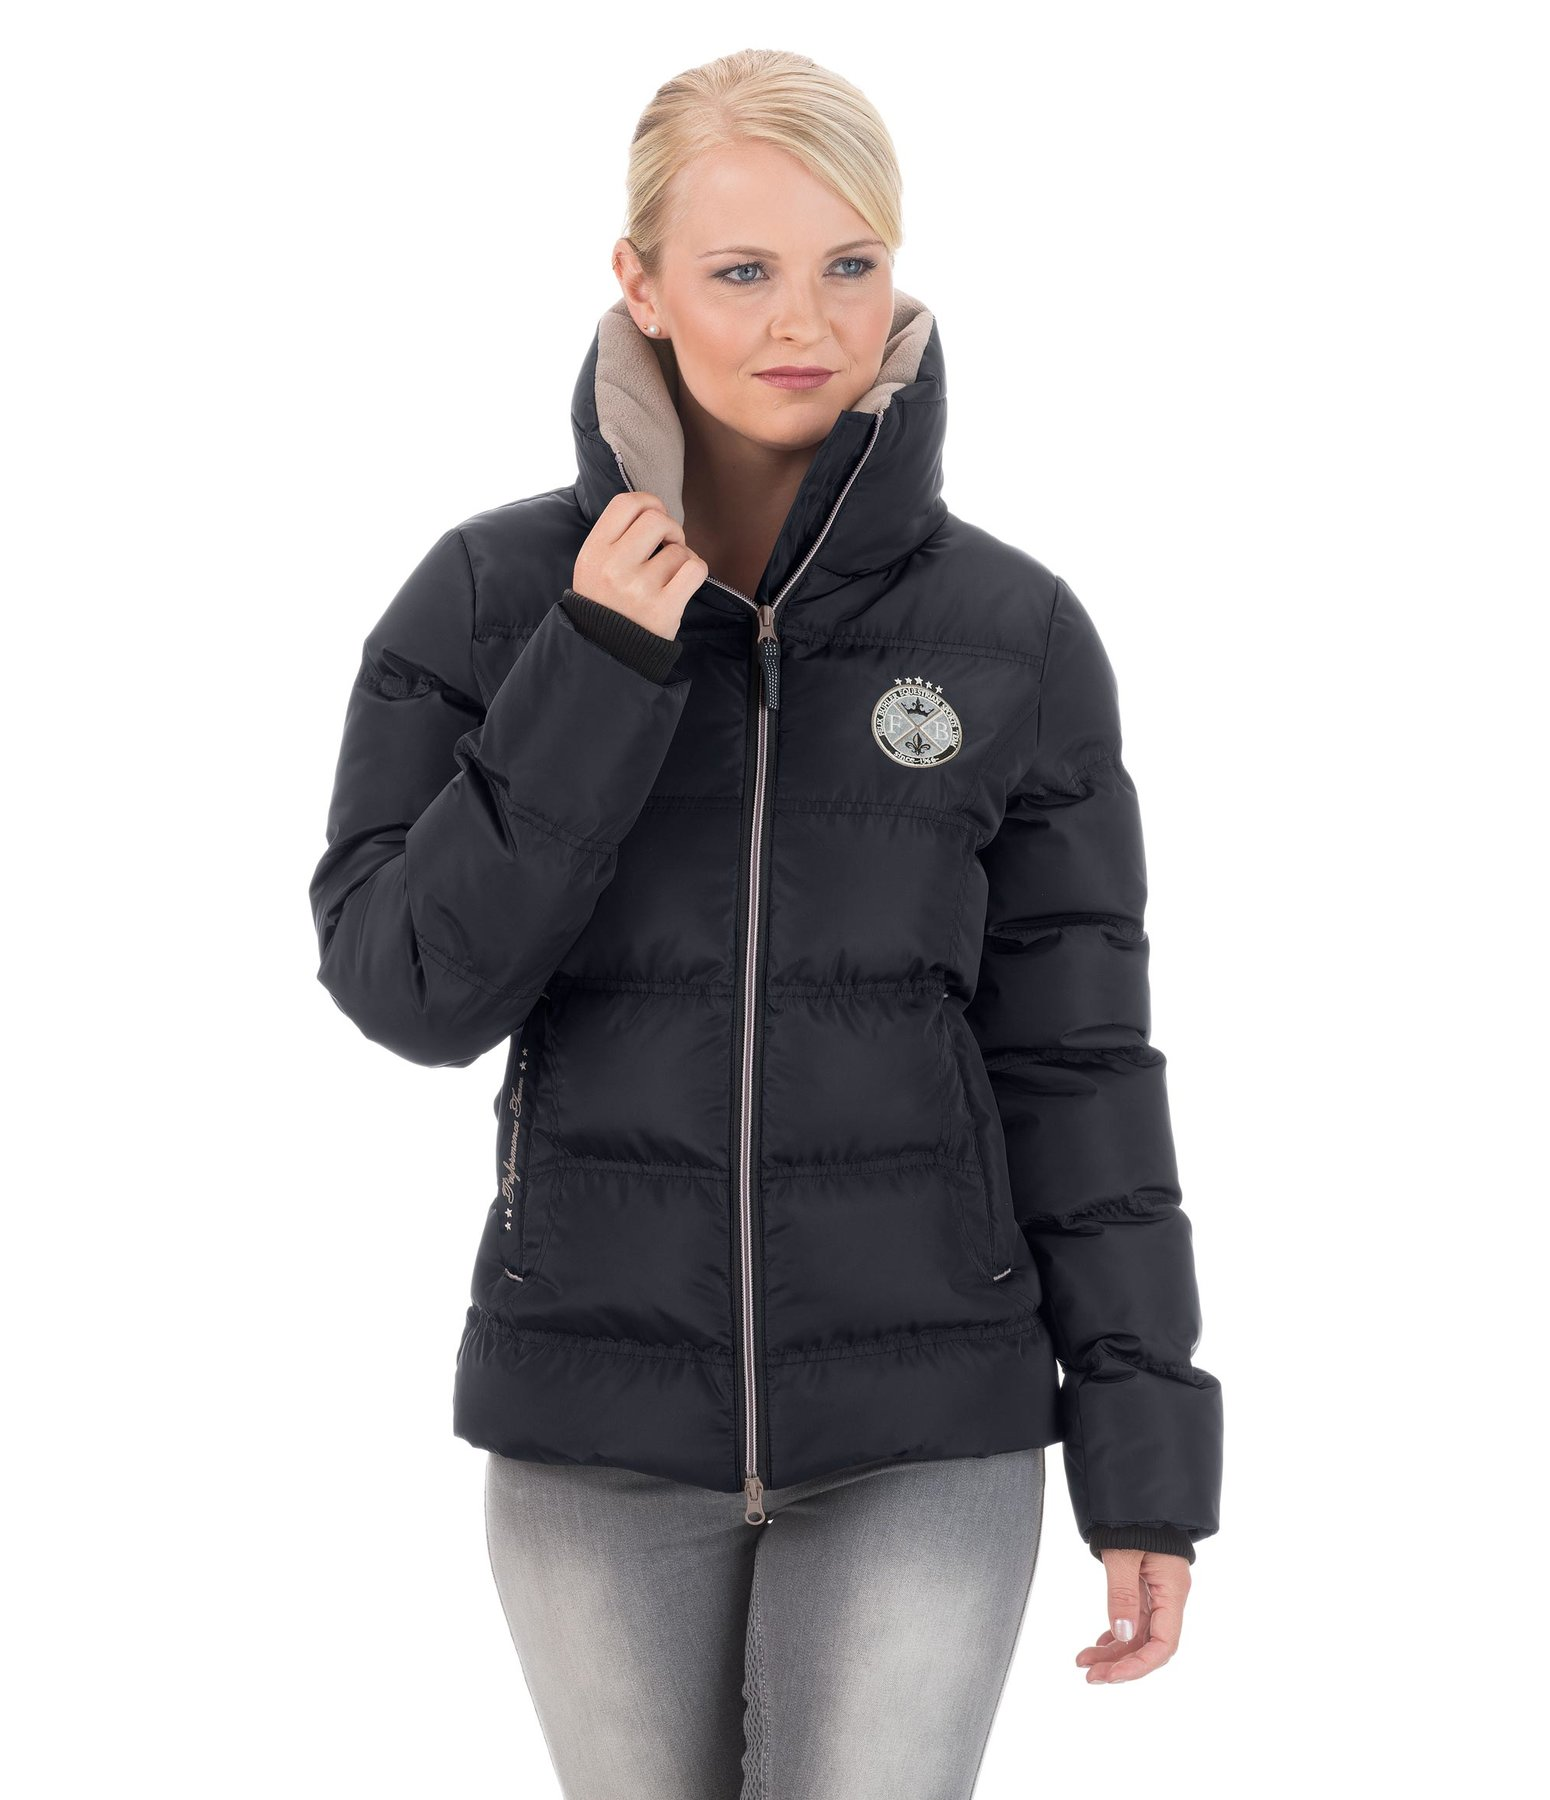 Quilted Riding Jacket Amira Winter Riding Jackets